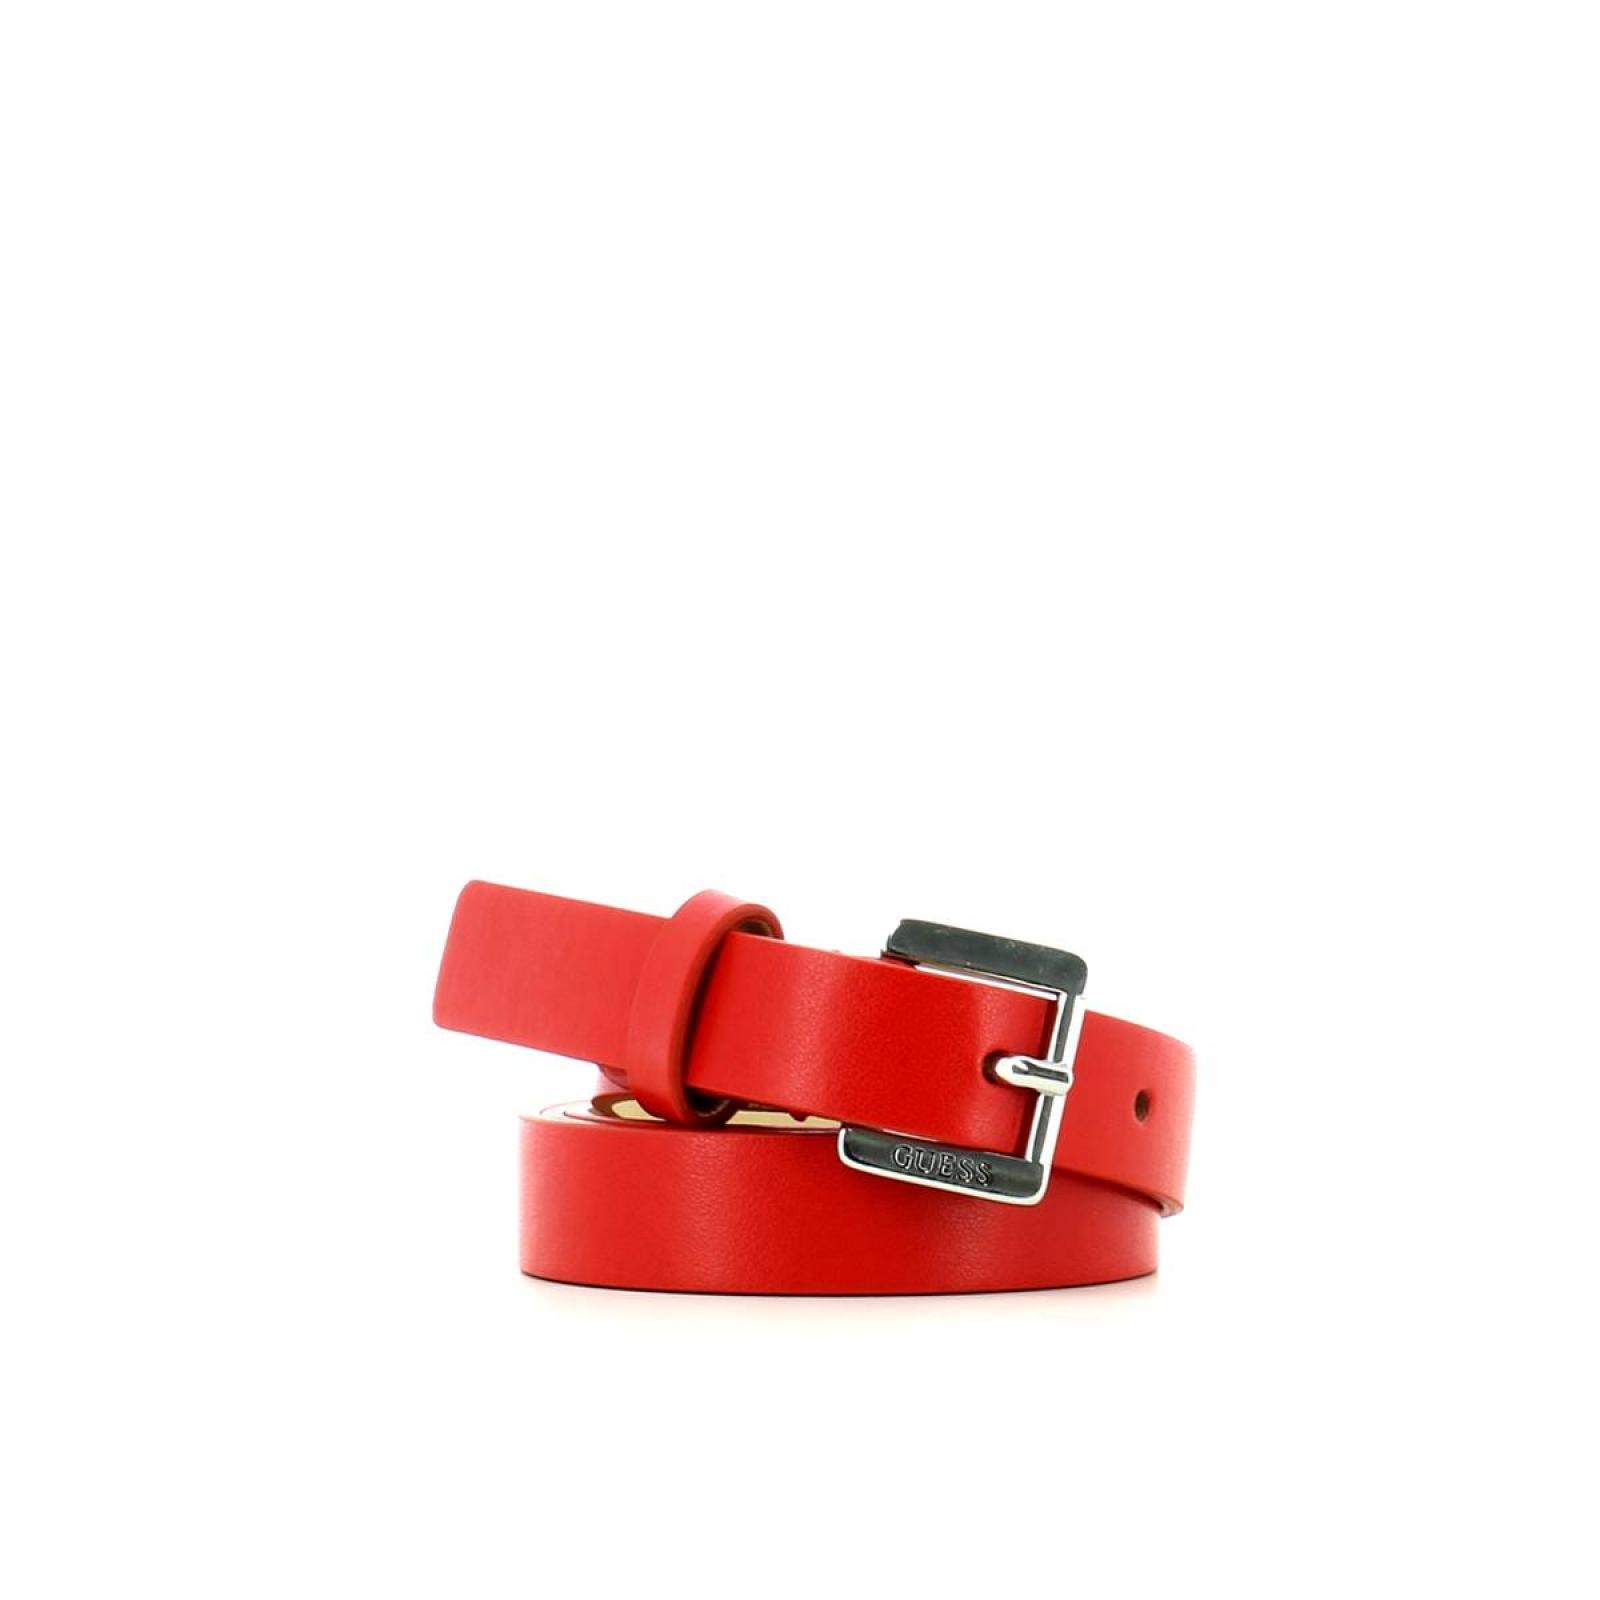 NC Belt adjustable